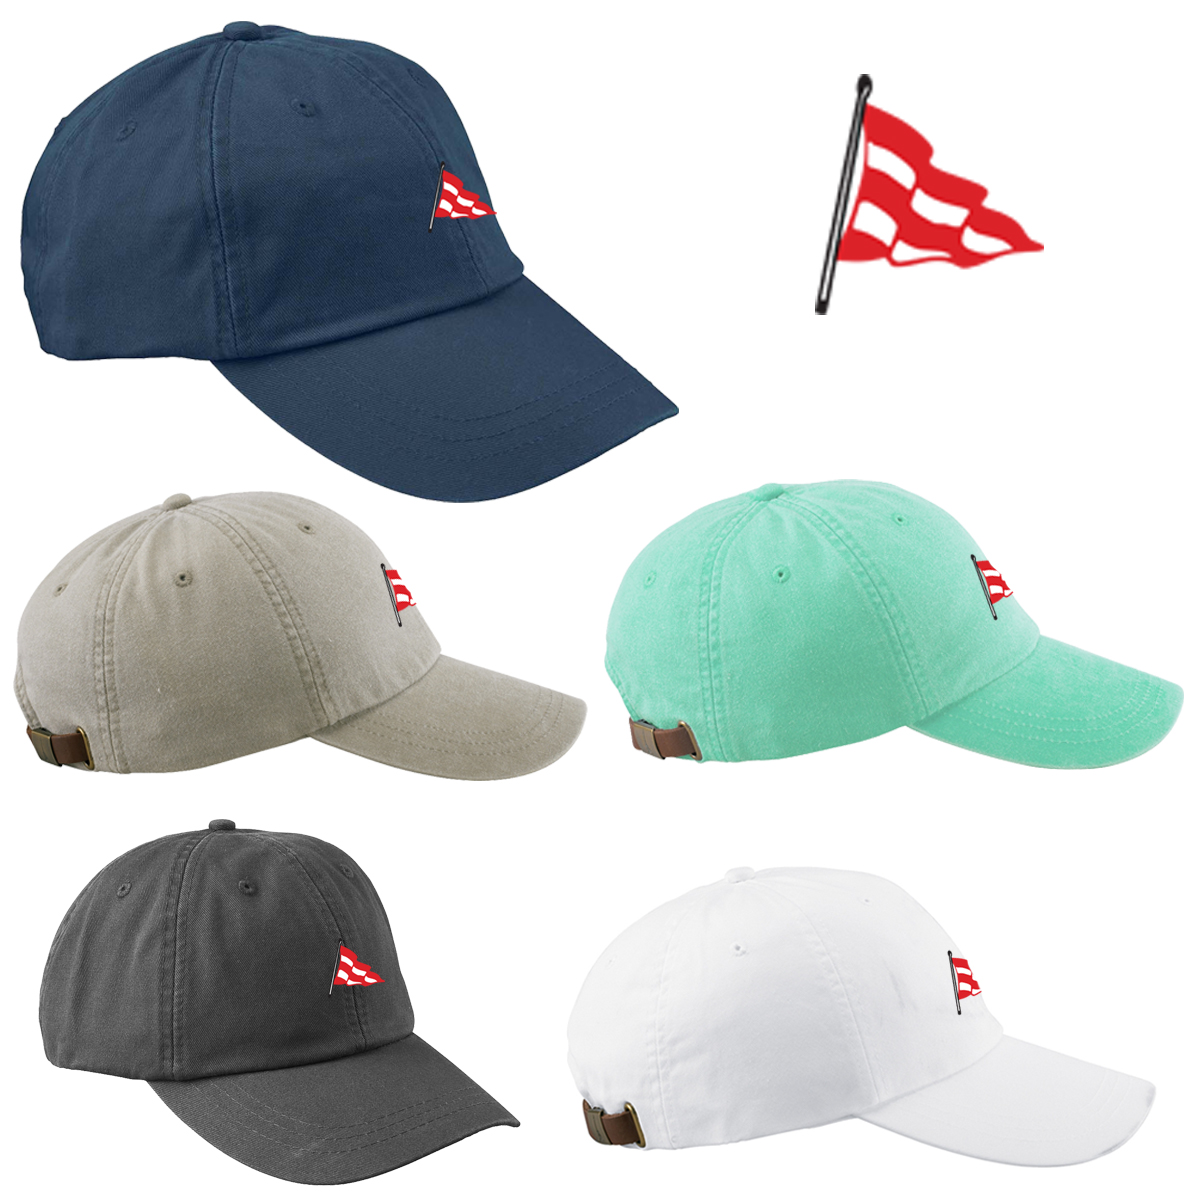 BRYC adjustable hat (BRYC901)